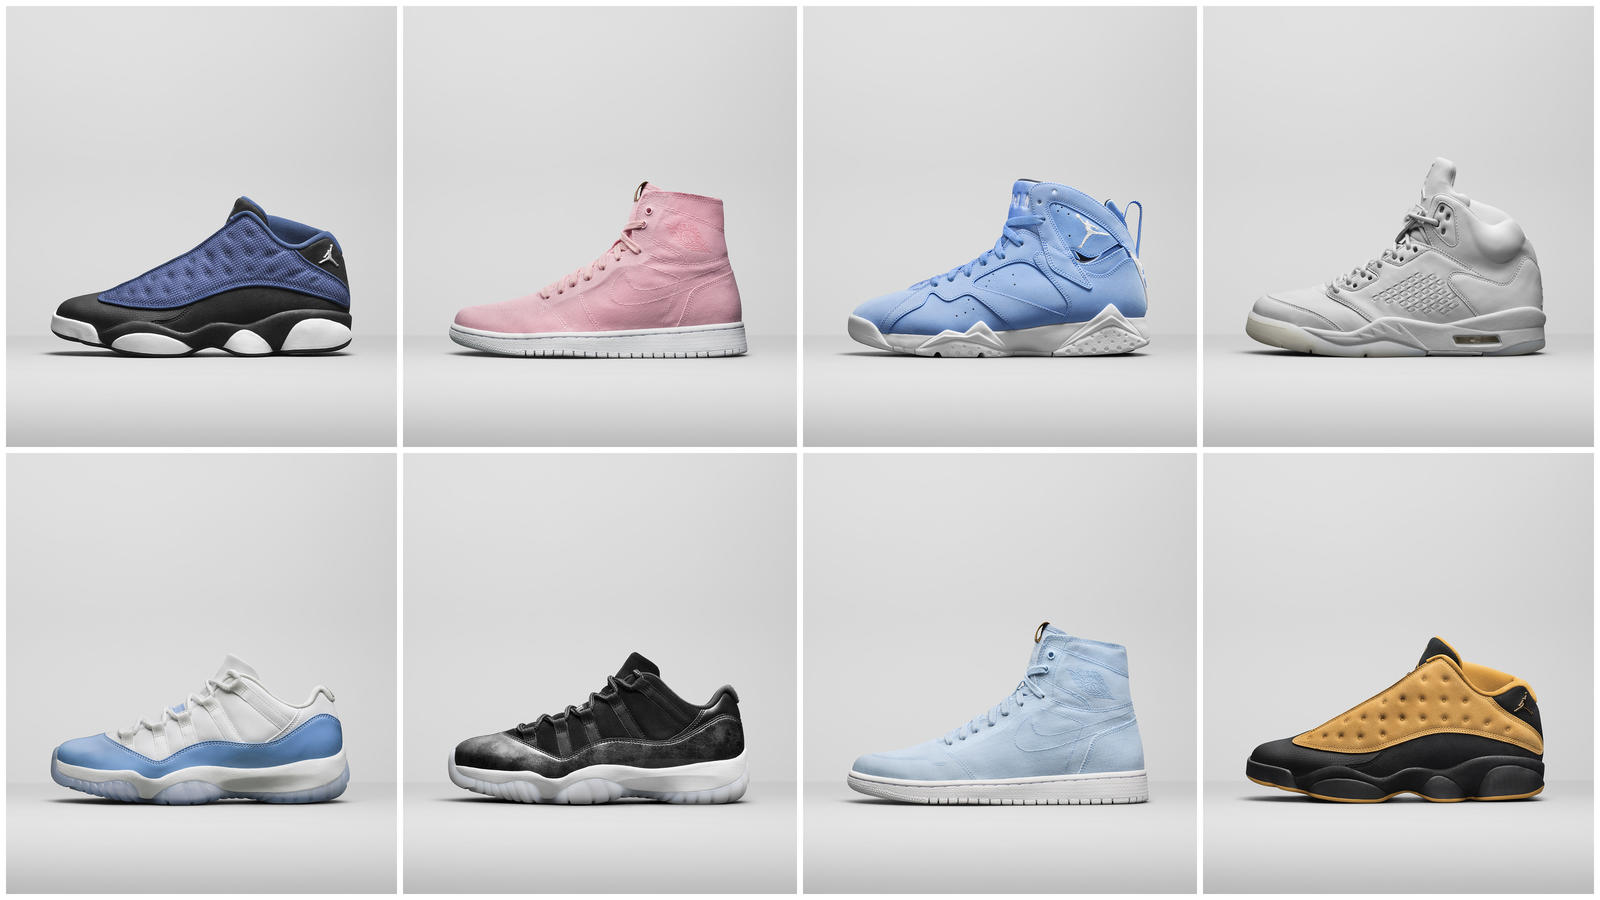 Jordan Brand Select Summer Retro Styles